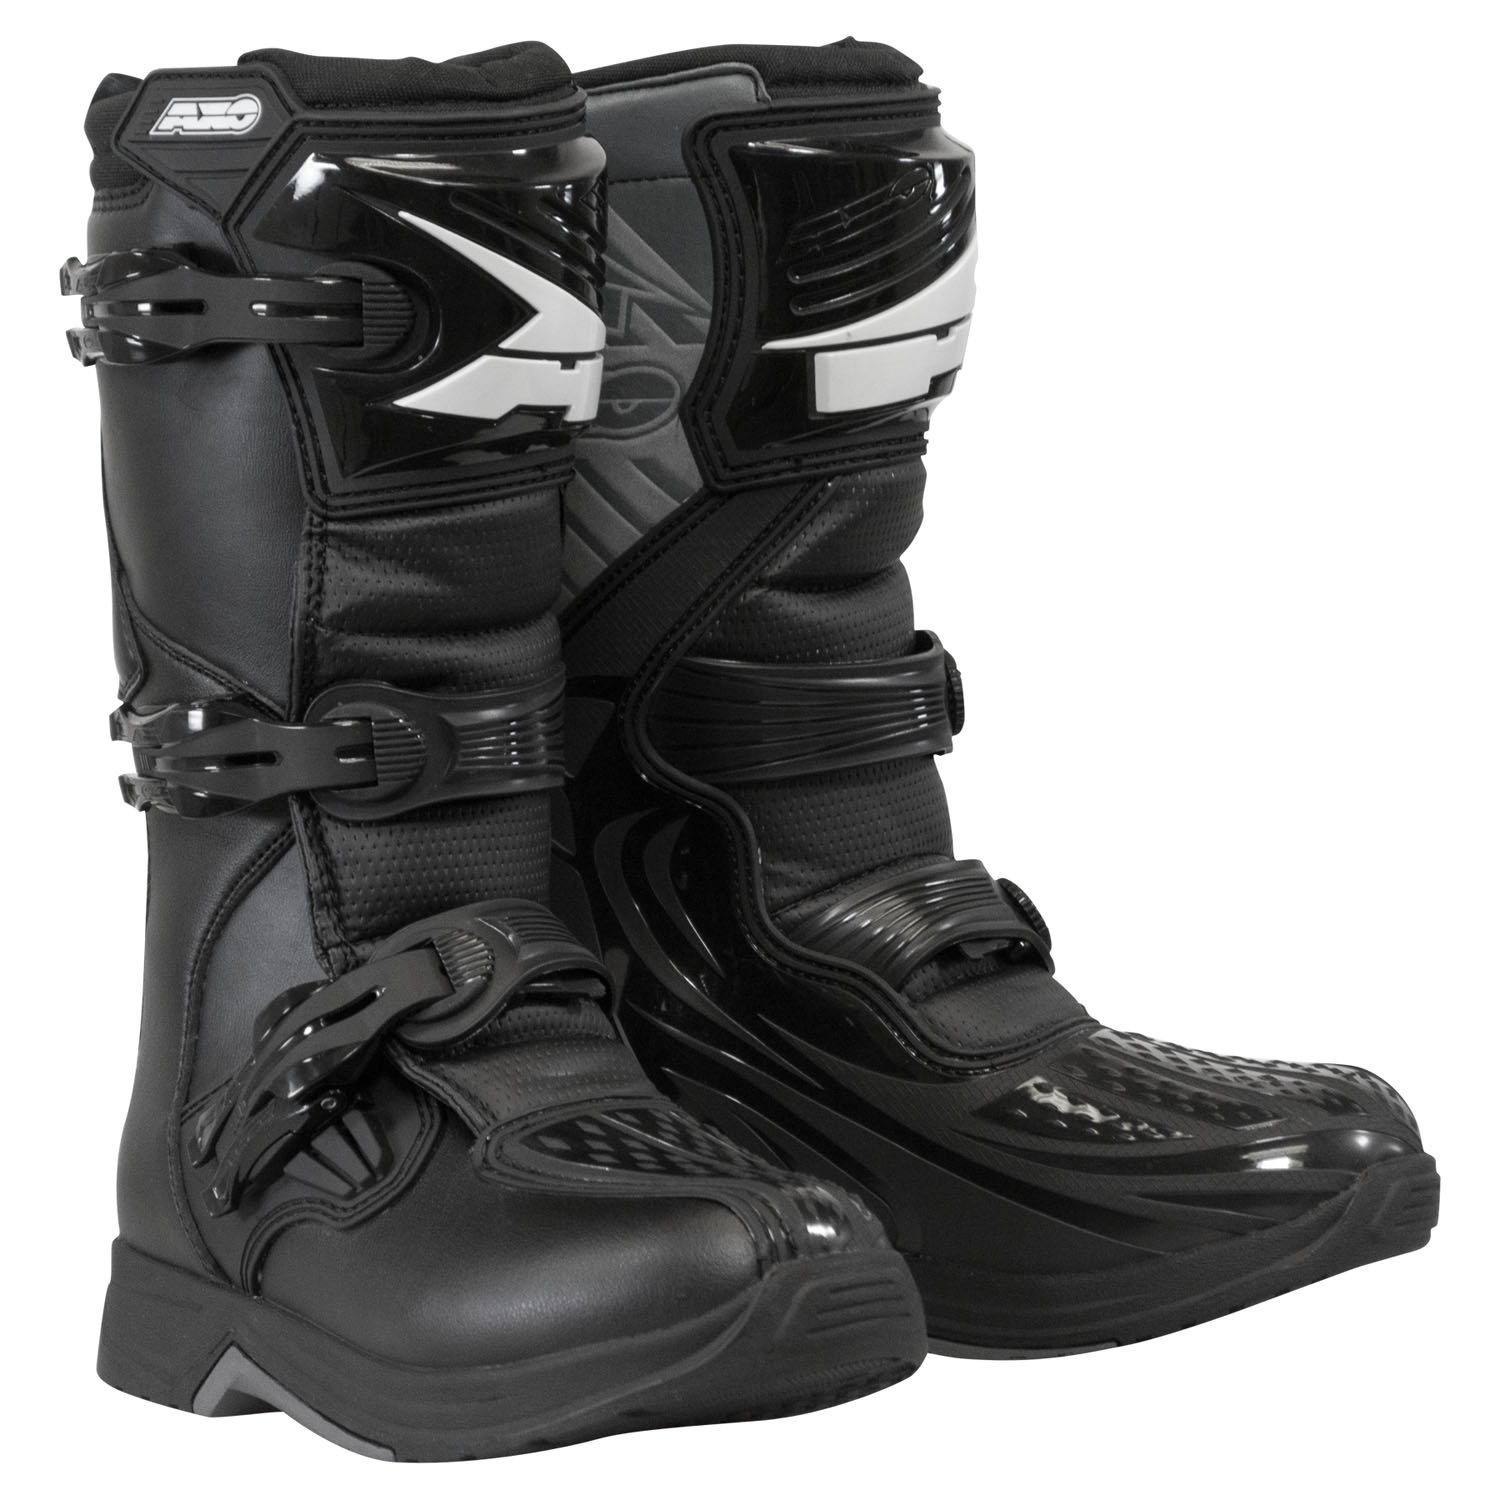 AXO Unisex-Child Drone Youth Boots (Black, Size 6) by AXO